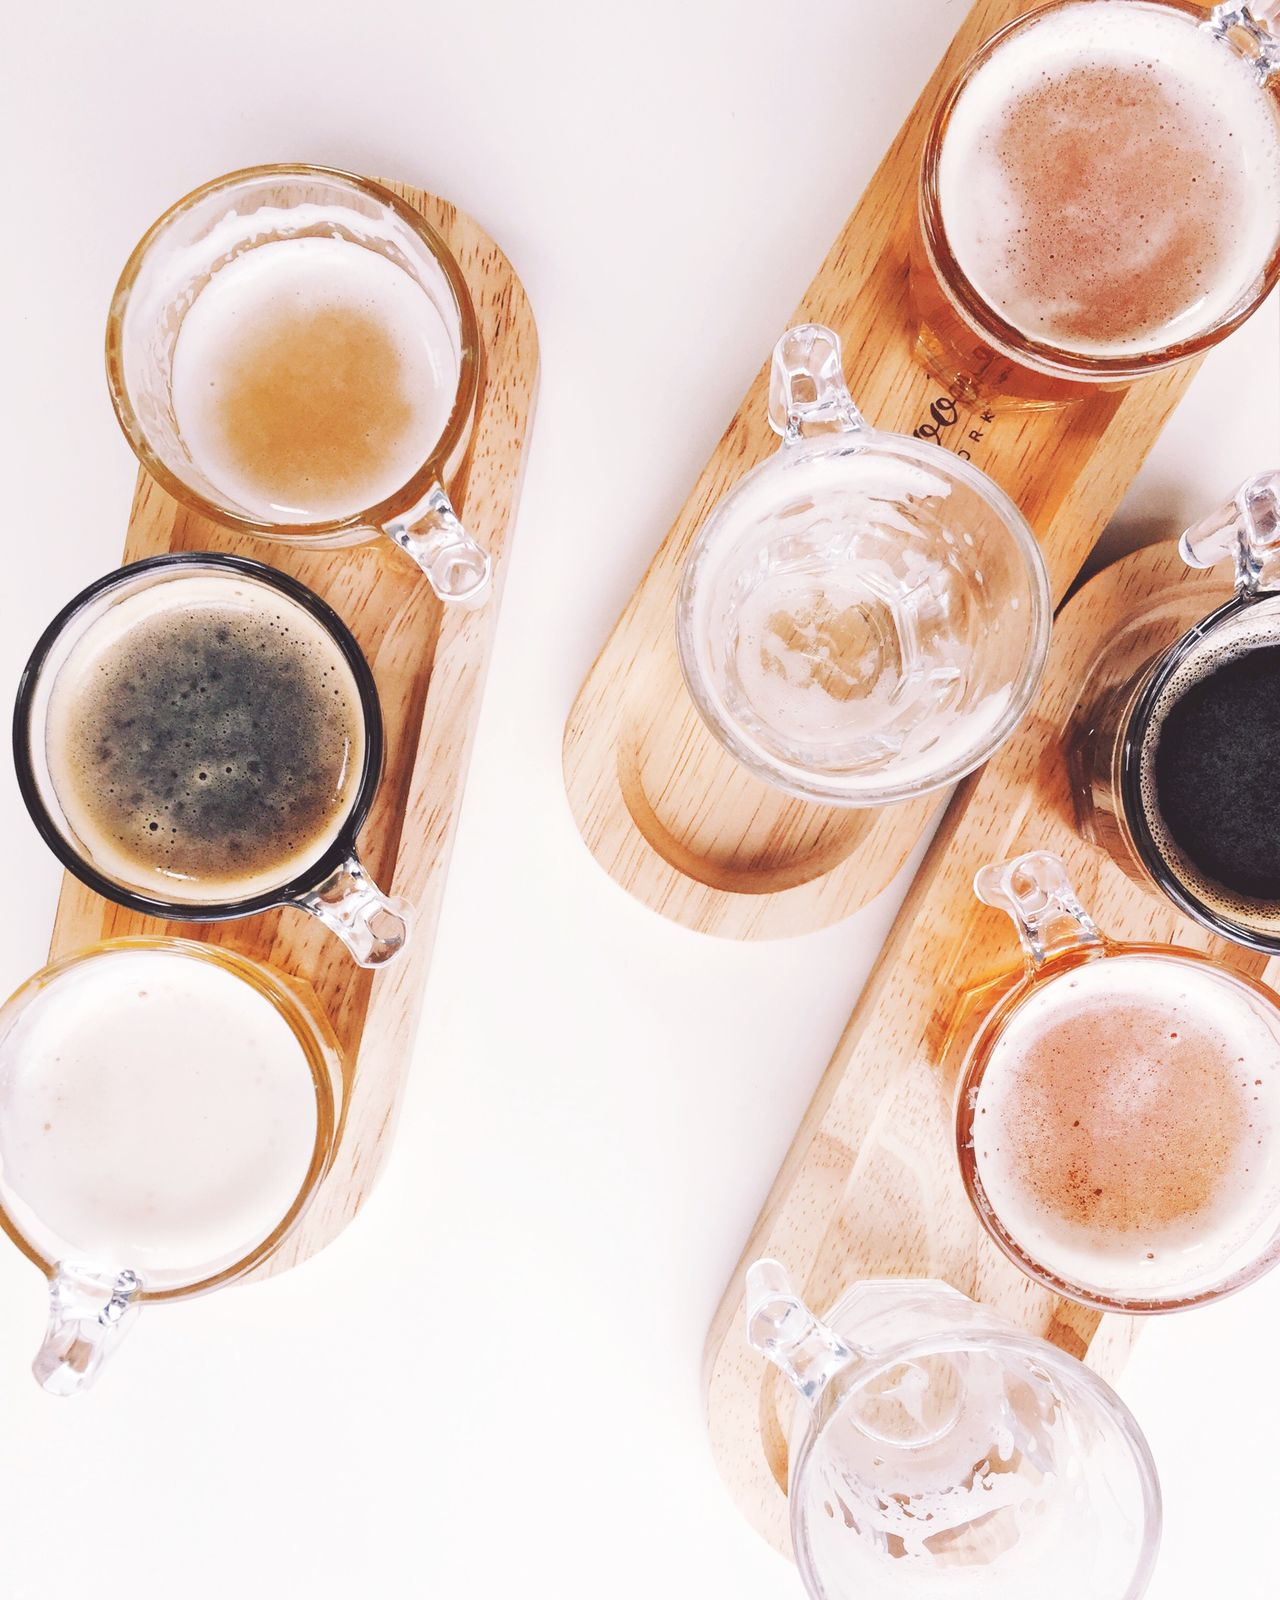 Beer Table Drink Refreshment Food And Drink Frothy Drink High Angle View Drinking Glass Table Directly Above Cappuccino No People Freshness Indoors  Beer Beer Time Beer Sampler Beer Sampling Froth Art Food Close-up Day